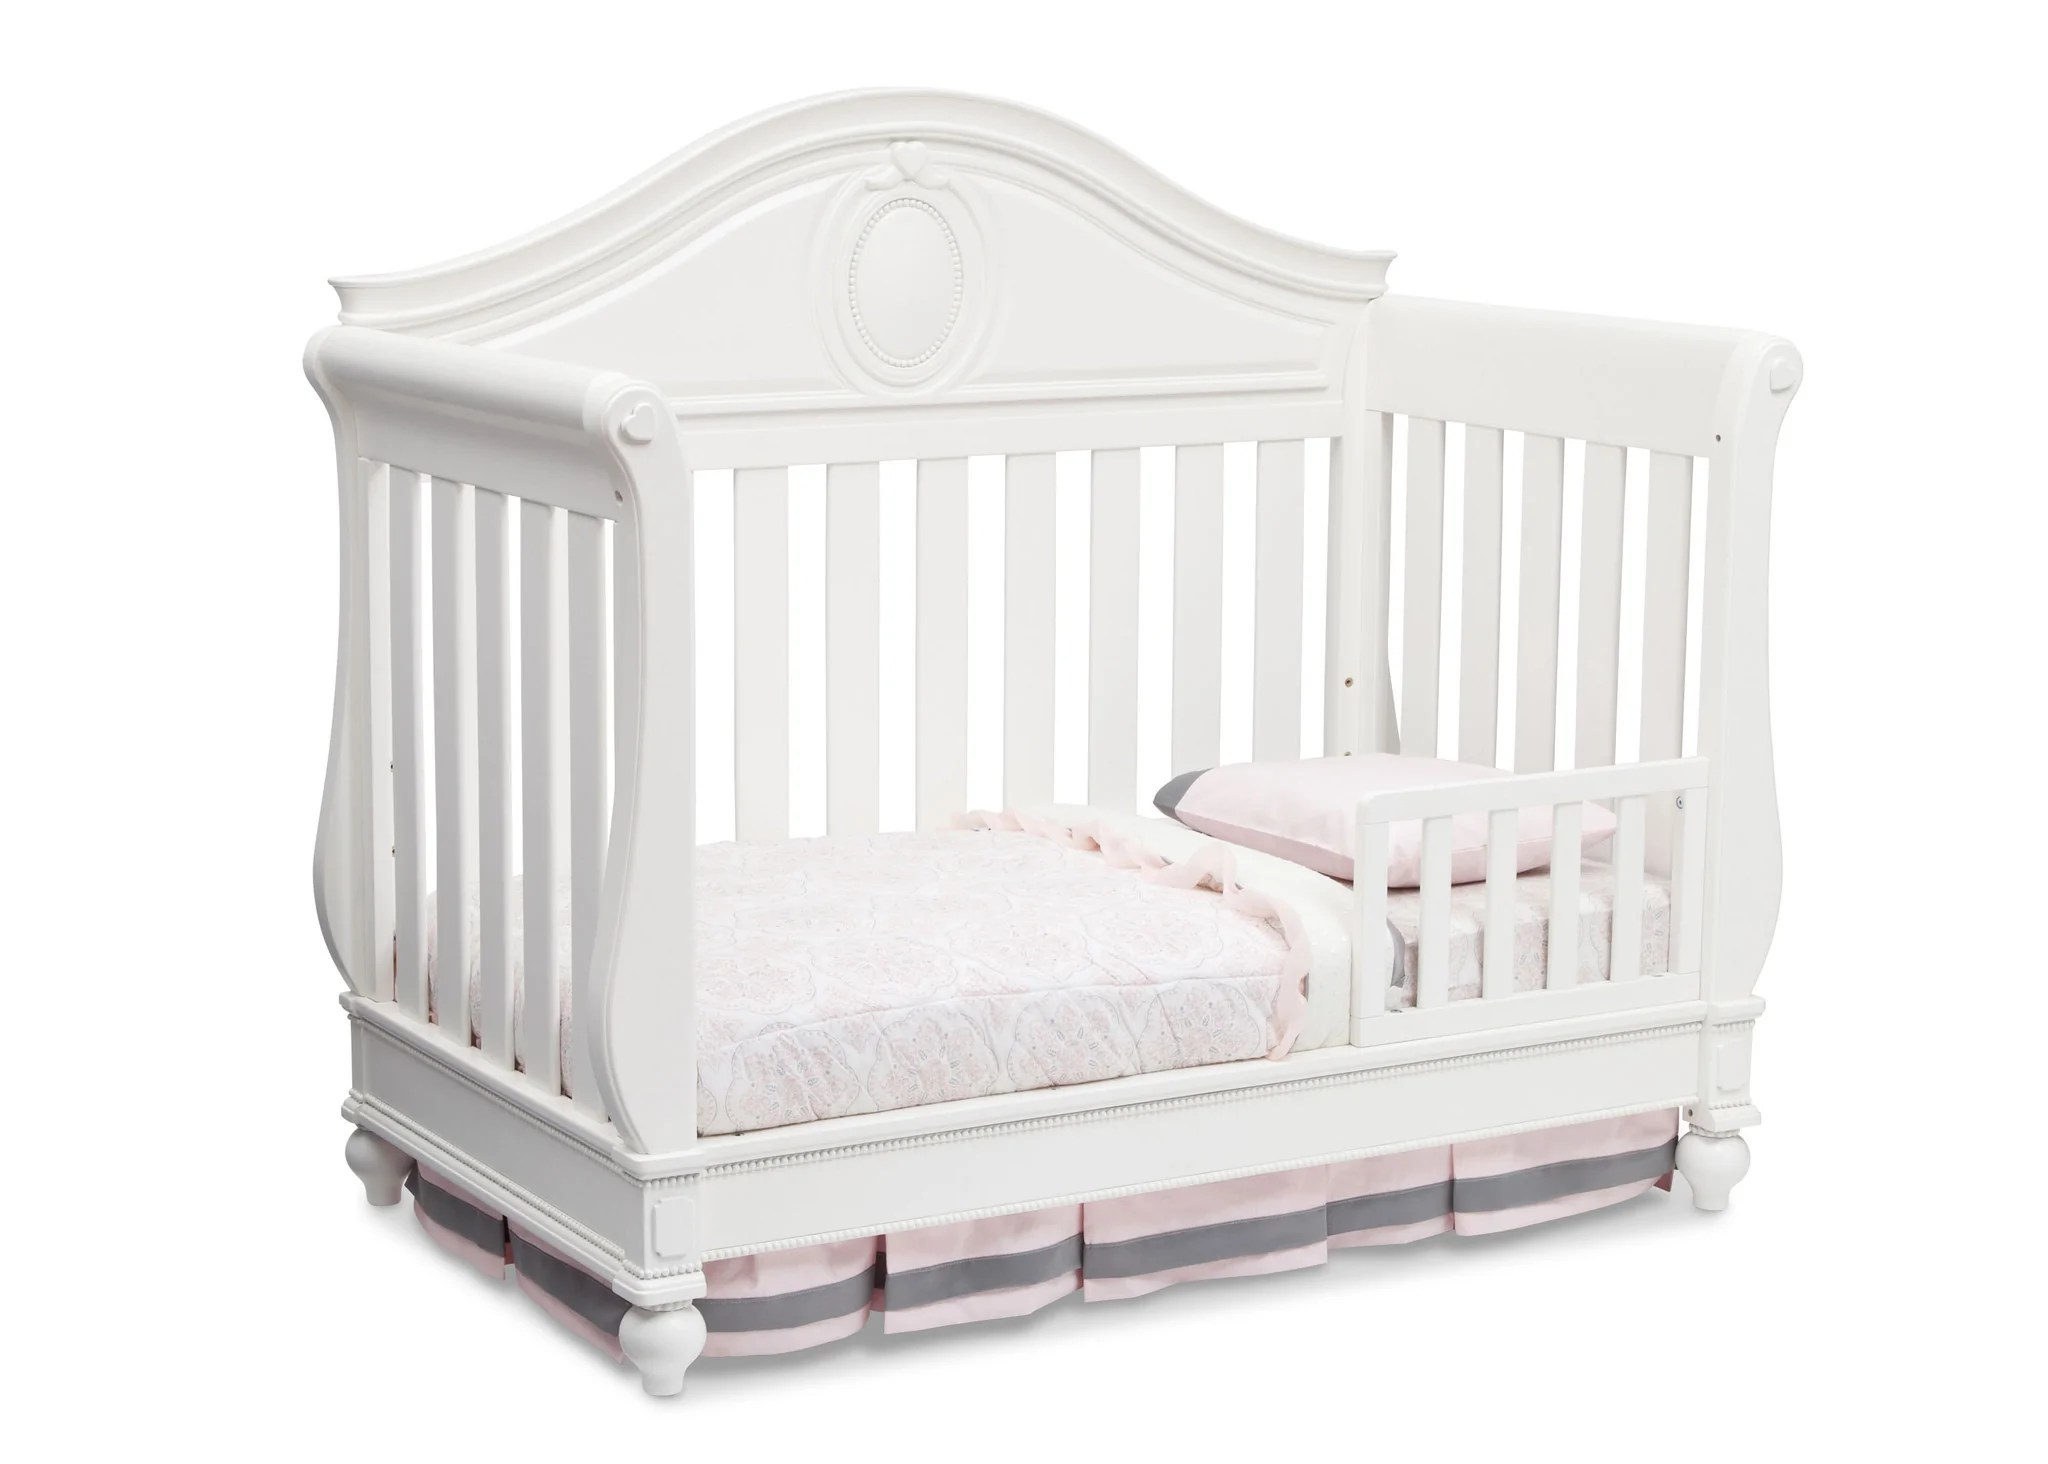 Disney Princess Magical Dreams 4 In 1 Crib Deltaplayground